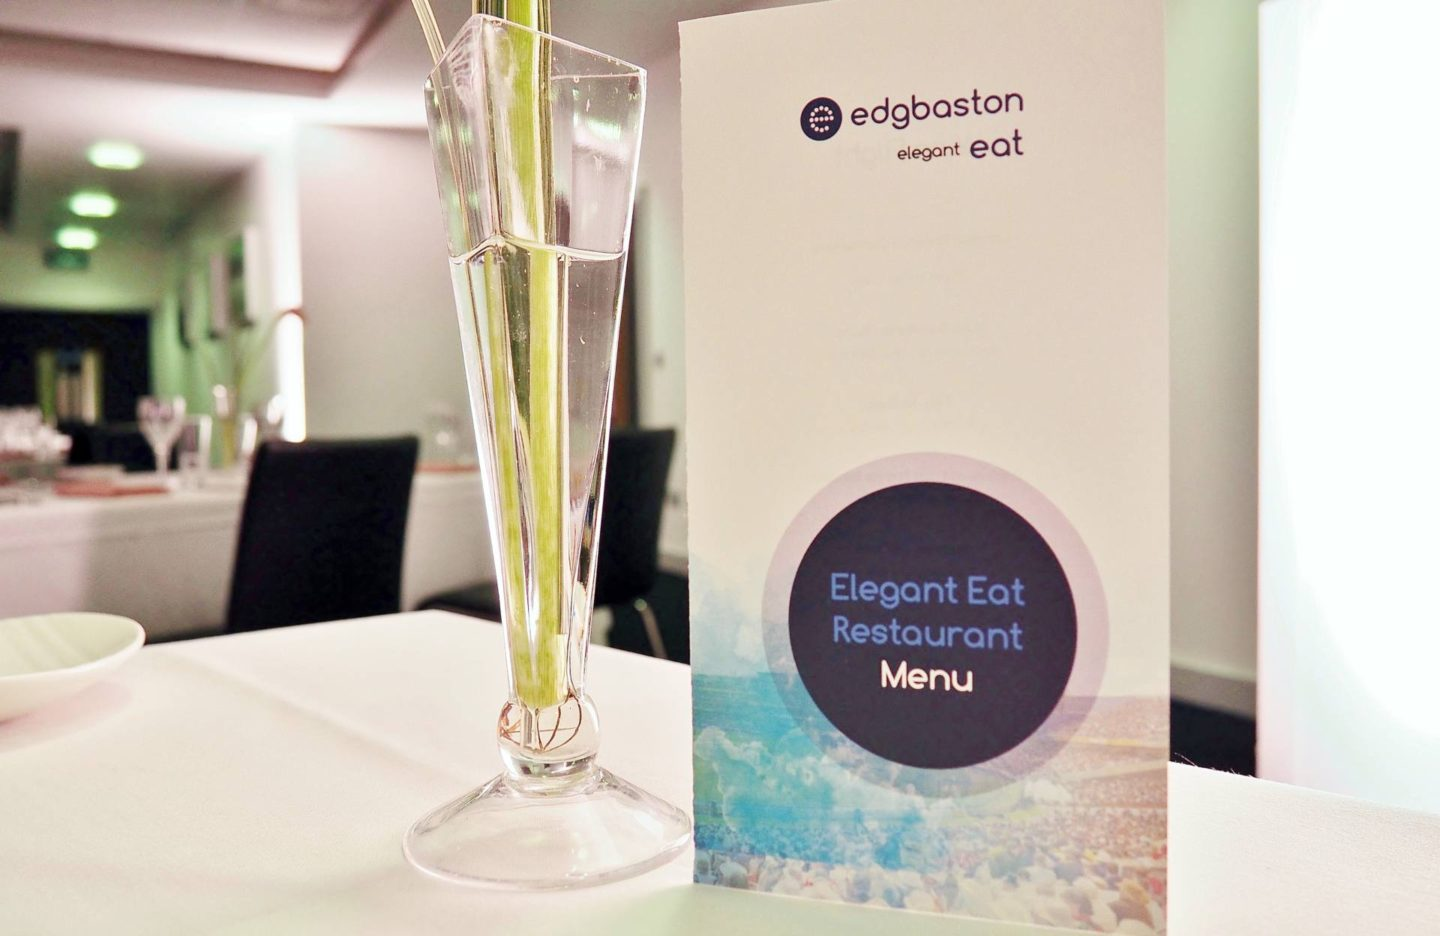 Emma Victoria Stokes Elegant Eat Fine Dining Edgbaston Cricket Ground Birmingham Menu